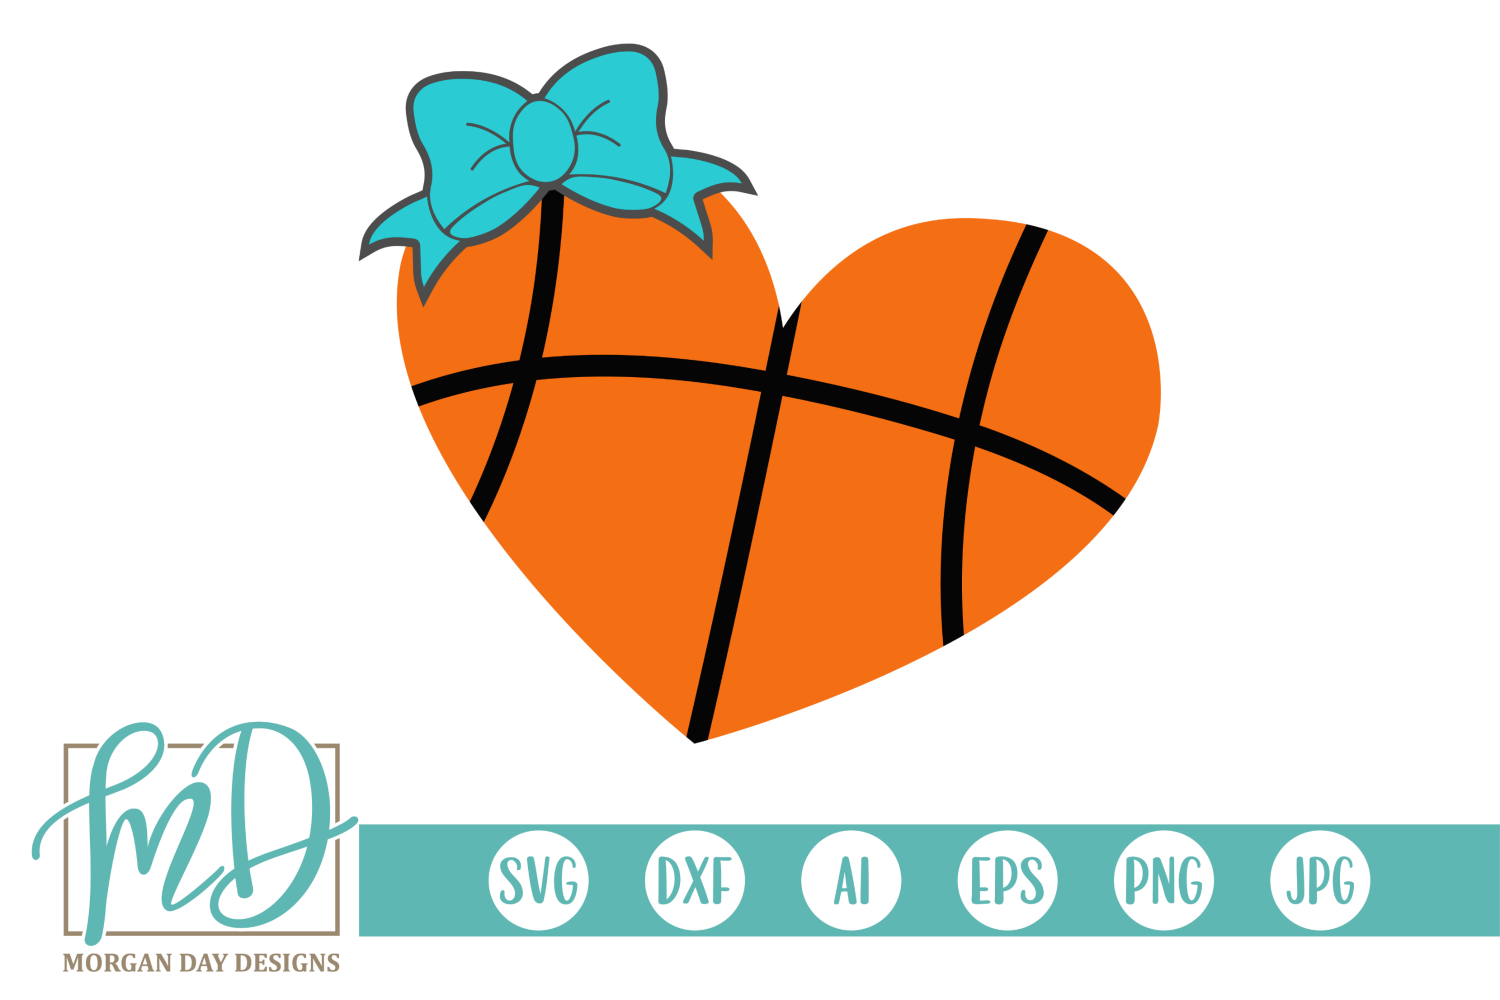 Basketball Heart SVG, DXF, AI, EPS, PNG, JPEG example image 1